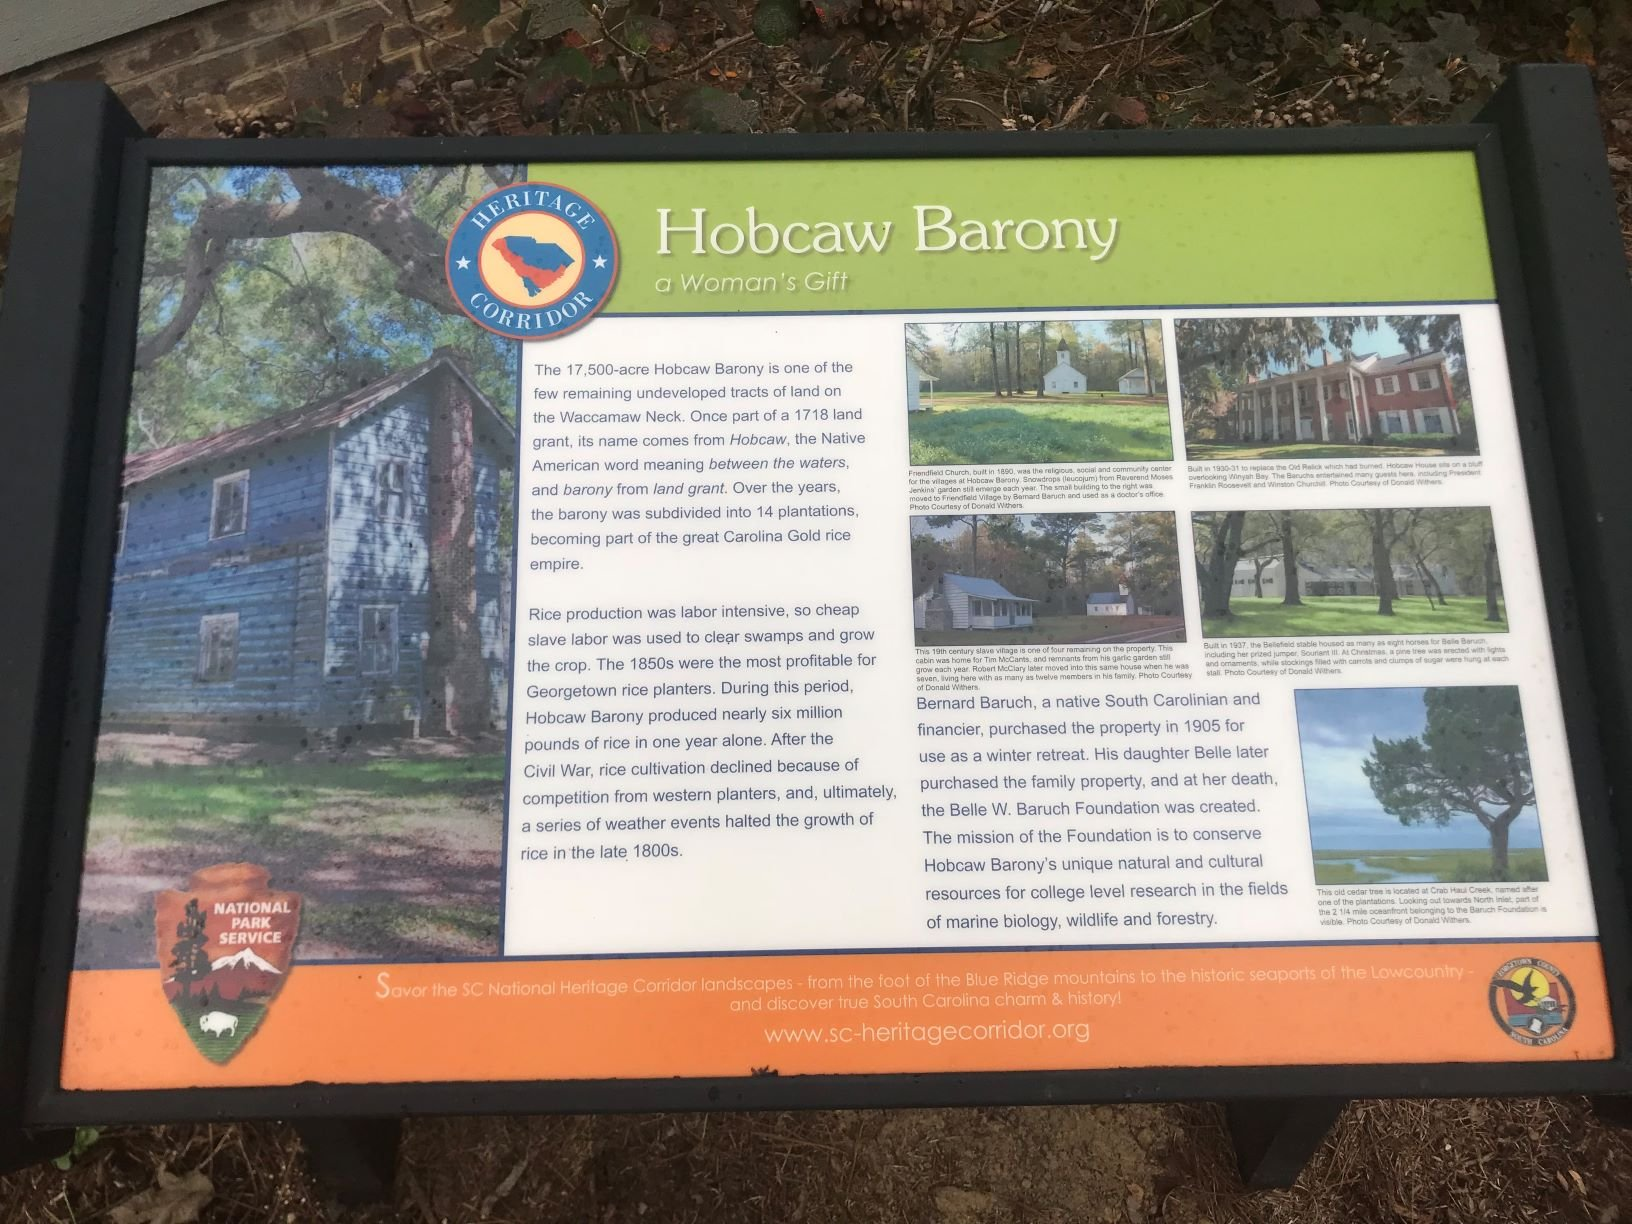 A sign details the environmental impact that Hobcaw Barony has on the surrounding areas.